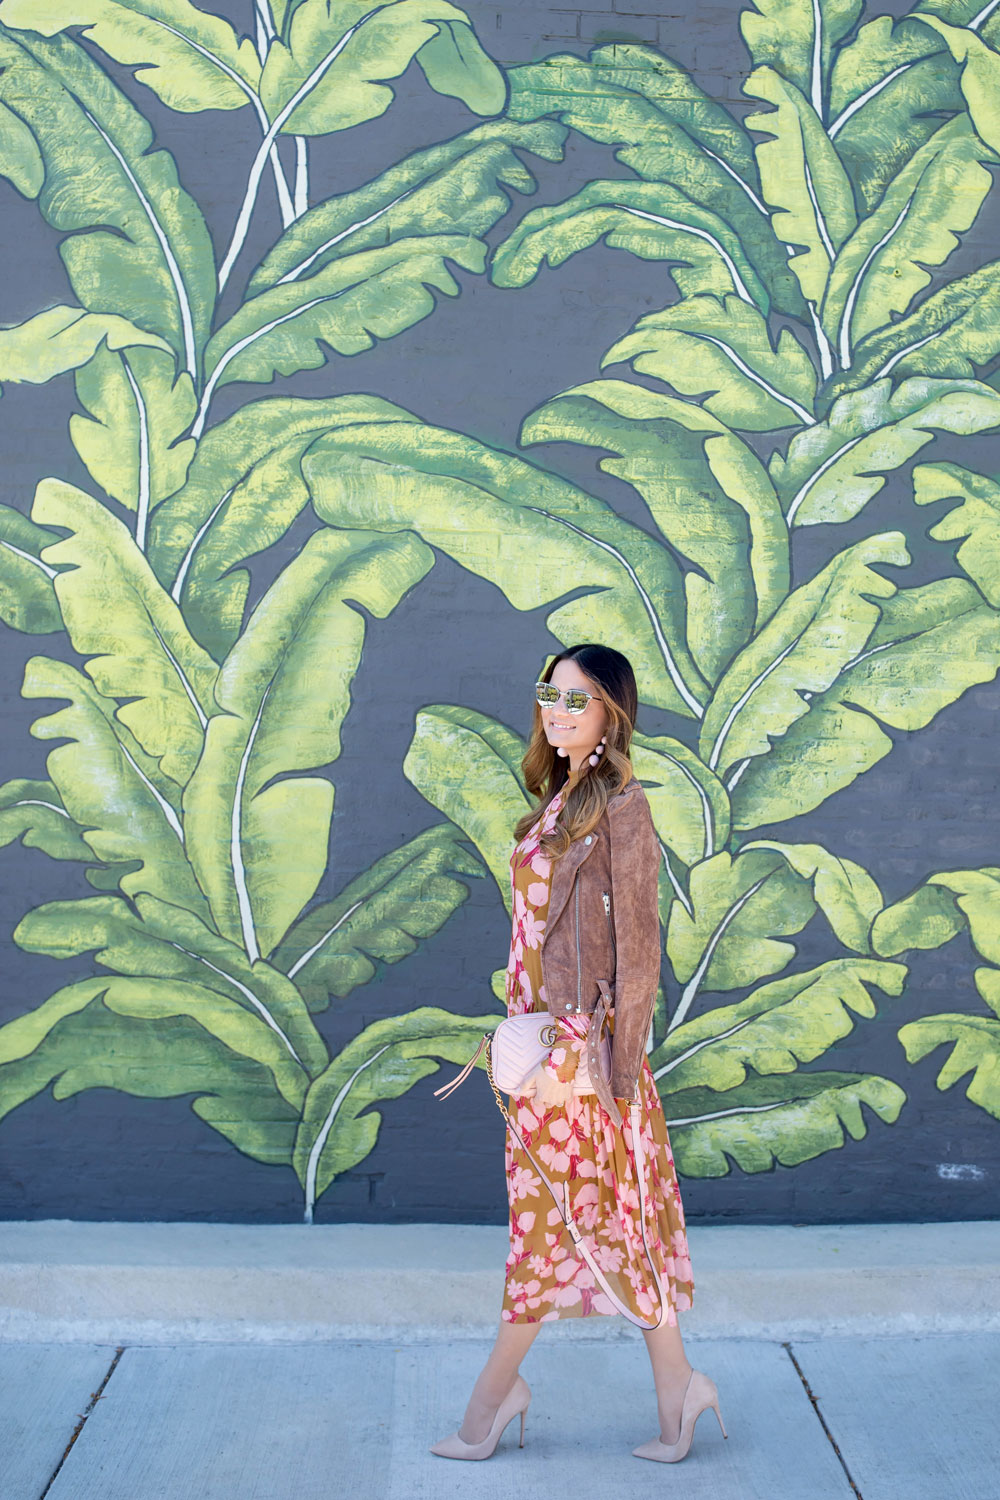 d7b40a4241c Pink and Tan Floral Midi Dress and Suede Jacket | Chicago Leaf Mural